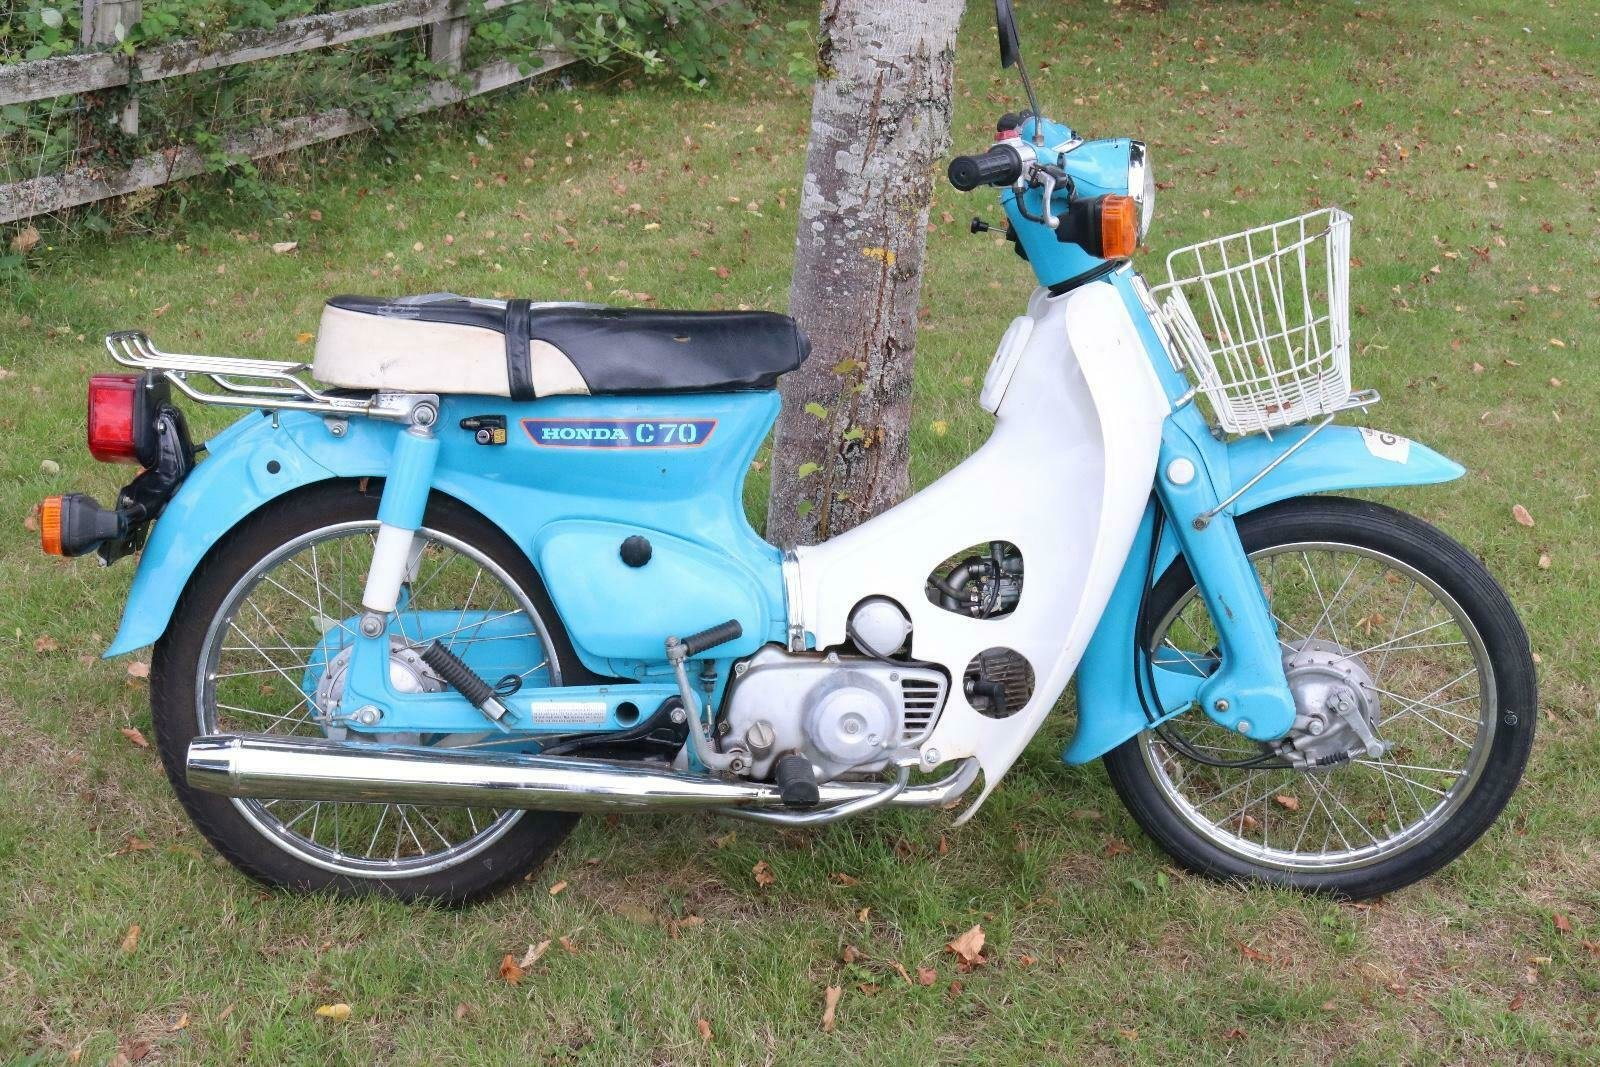 Honda C70 1980 runs and rides perfectly commuter or the back For Sale (picture 1 of 6)